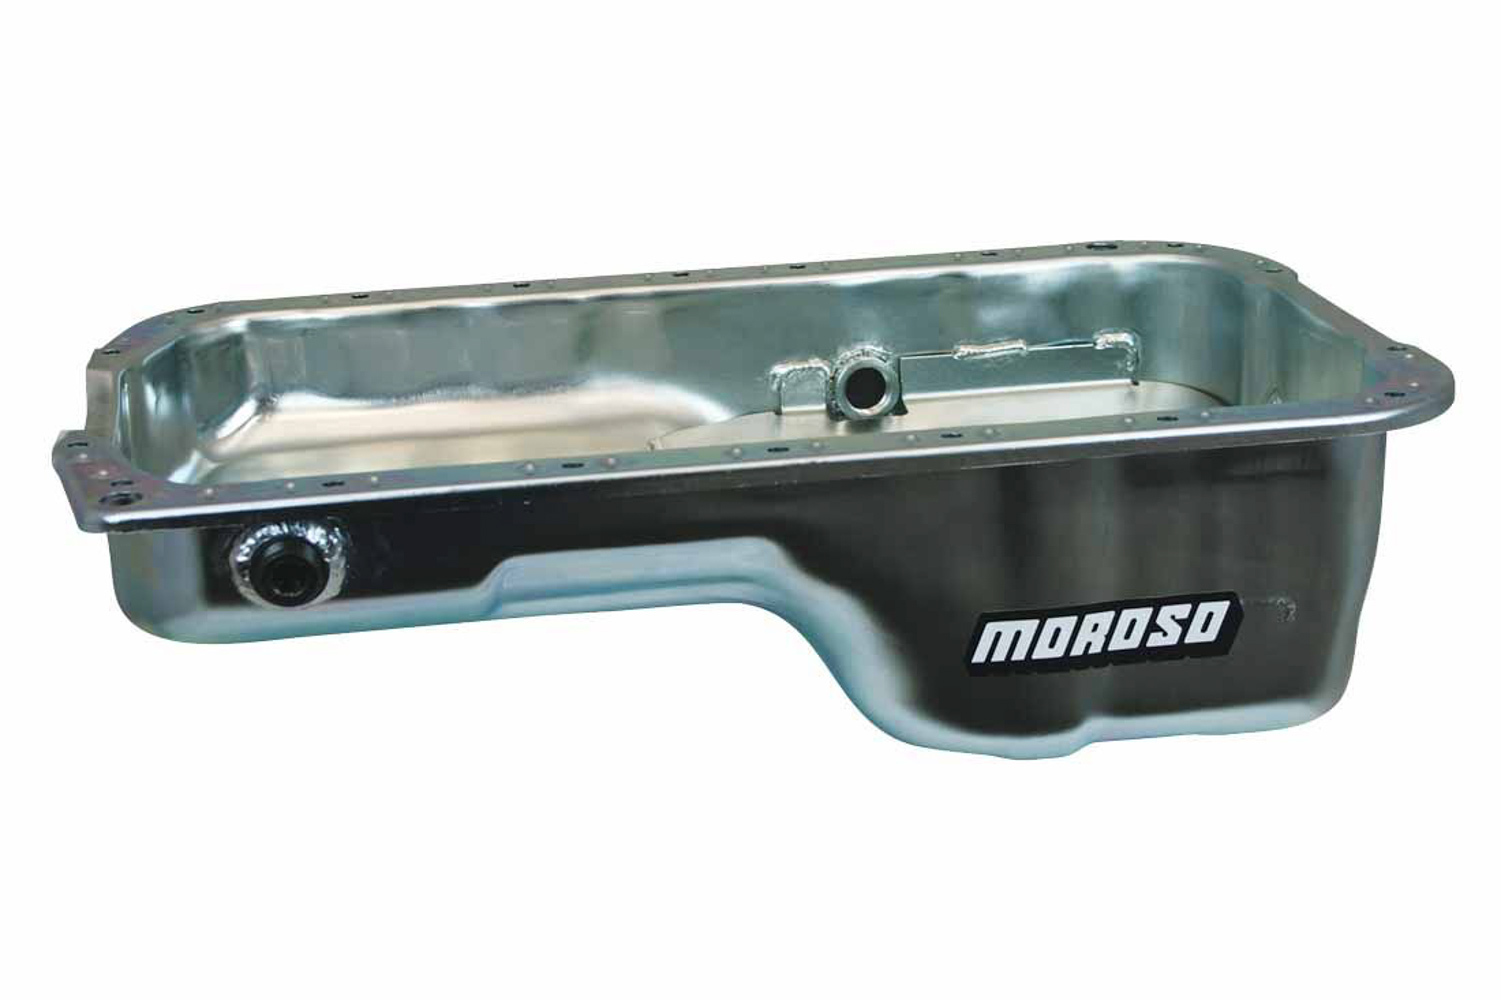 Moroso 20916 Engine Oil Pan, Stock Replacement, Driver Side Sump, 4 qt, 5-1/4 in Deep, Baffled, Steel, Zinc Oxide, Honda H-Series, Each